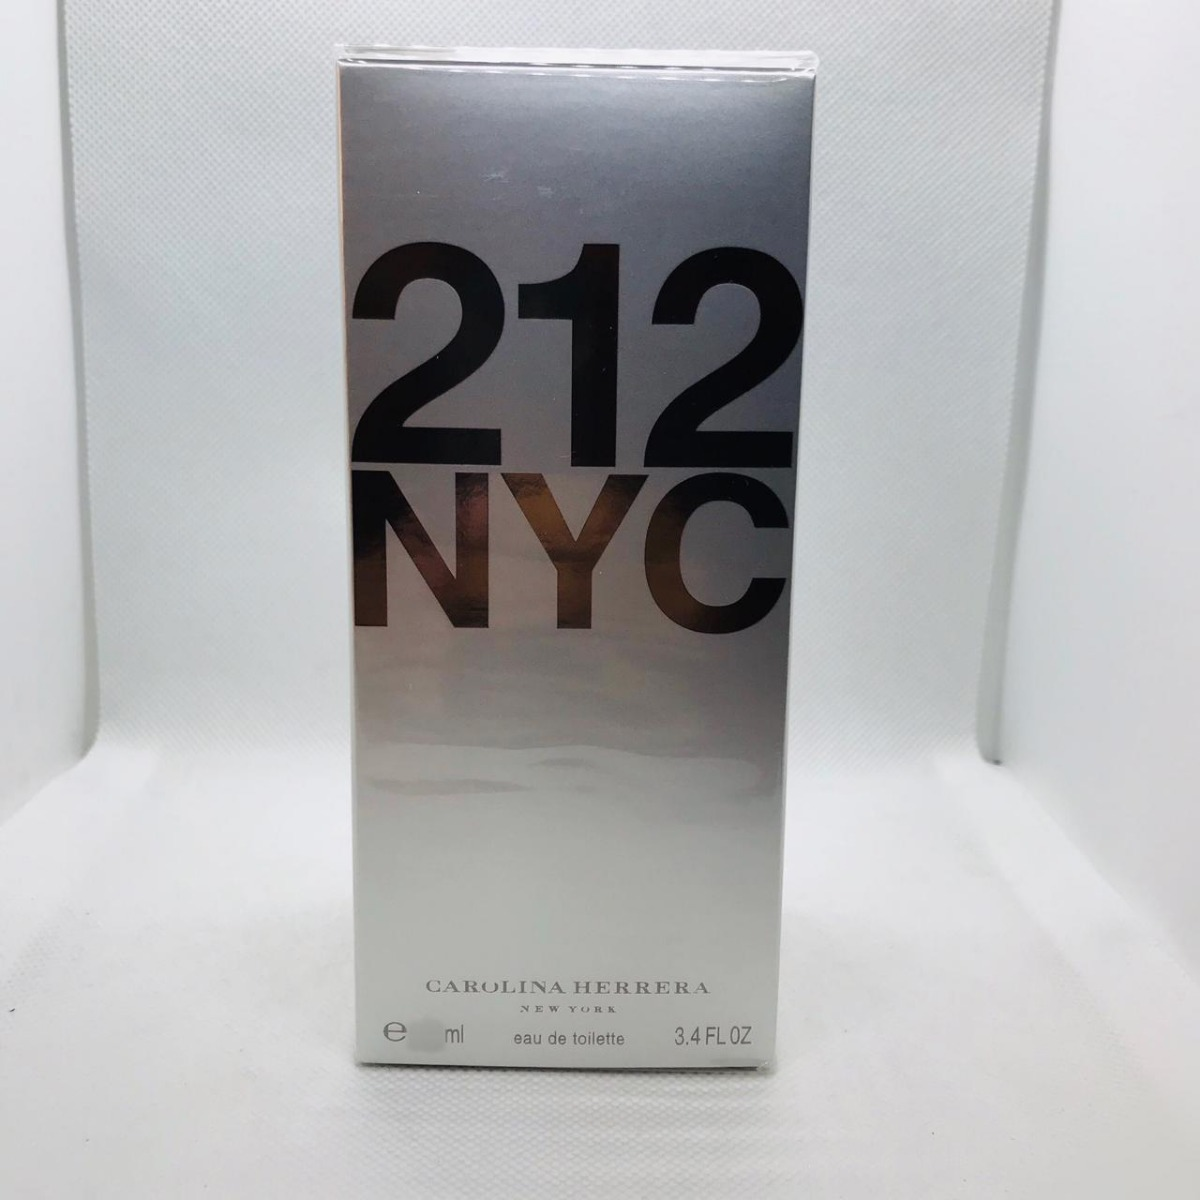 9556932eee4bb 212 nyc carolina herrera feminino eau de toilette 30ml. Carregando zoom.